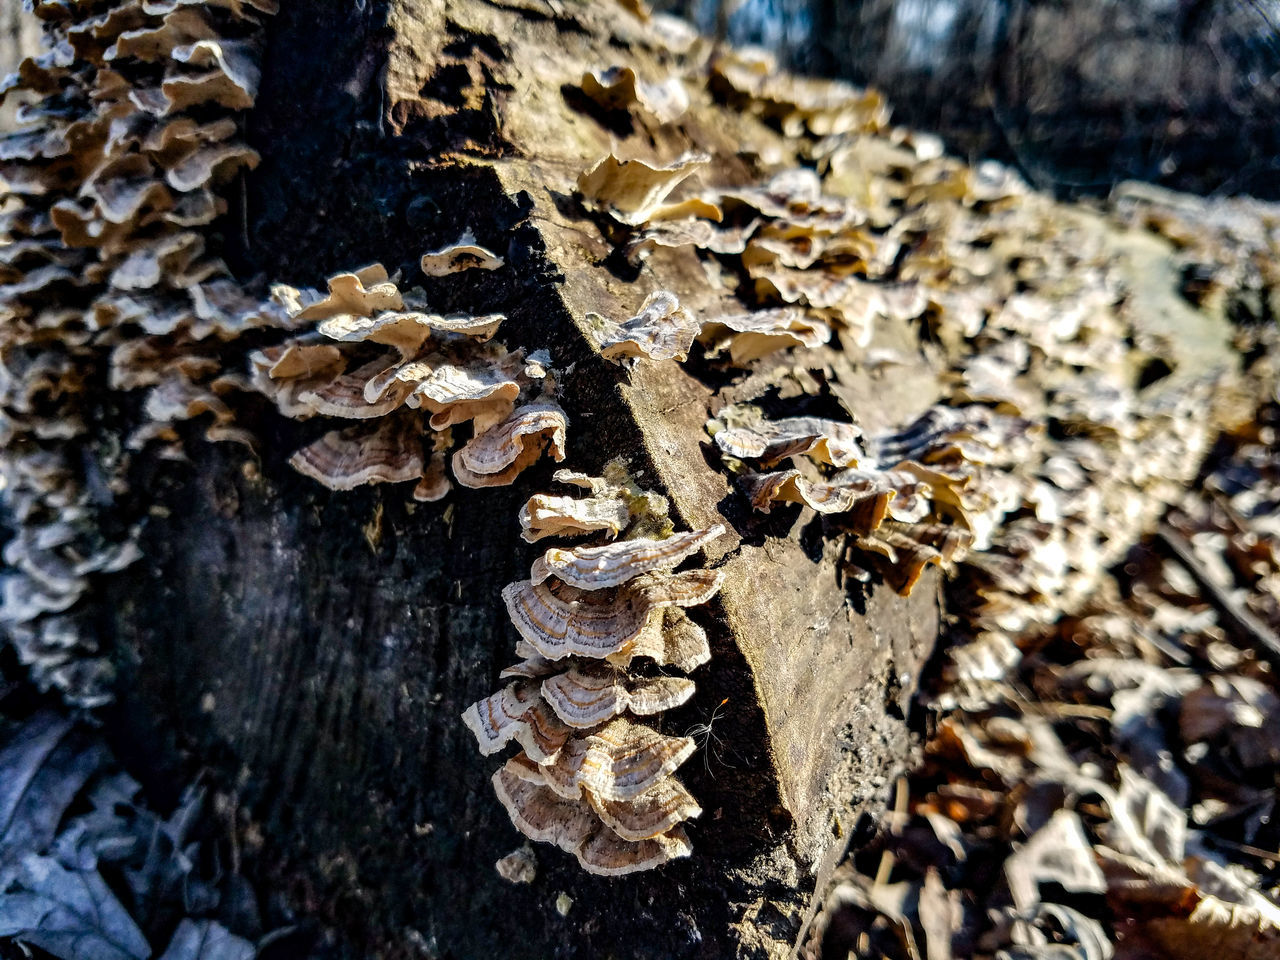 Close-up Nature No People Outdoors Sunlight Day Beauty In Nature Growth Minnesota Paynesville Crow River Nature ParkMarch Nature Park  Springtime Spring Fungus Mushrooms Fallen Tree Forest Tree Trees Explore Bare Tree Tree Trunk Landscape